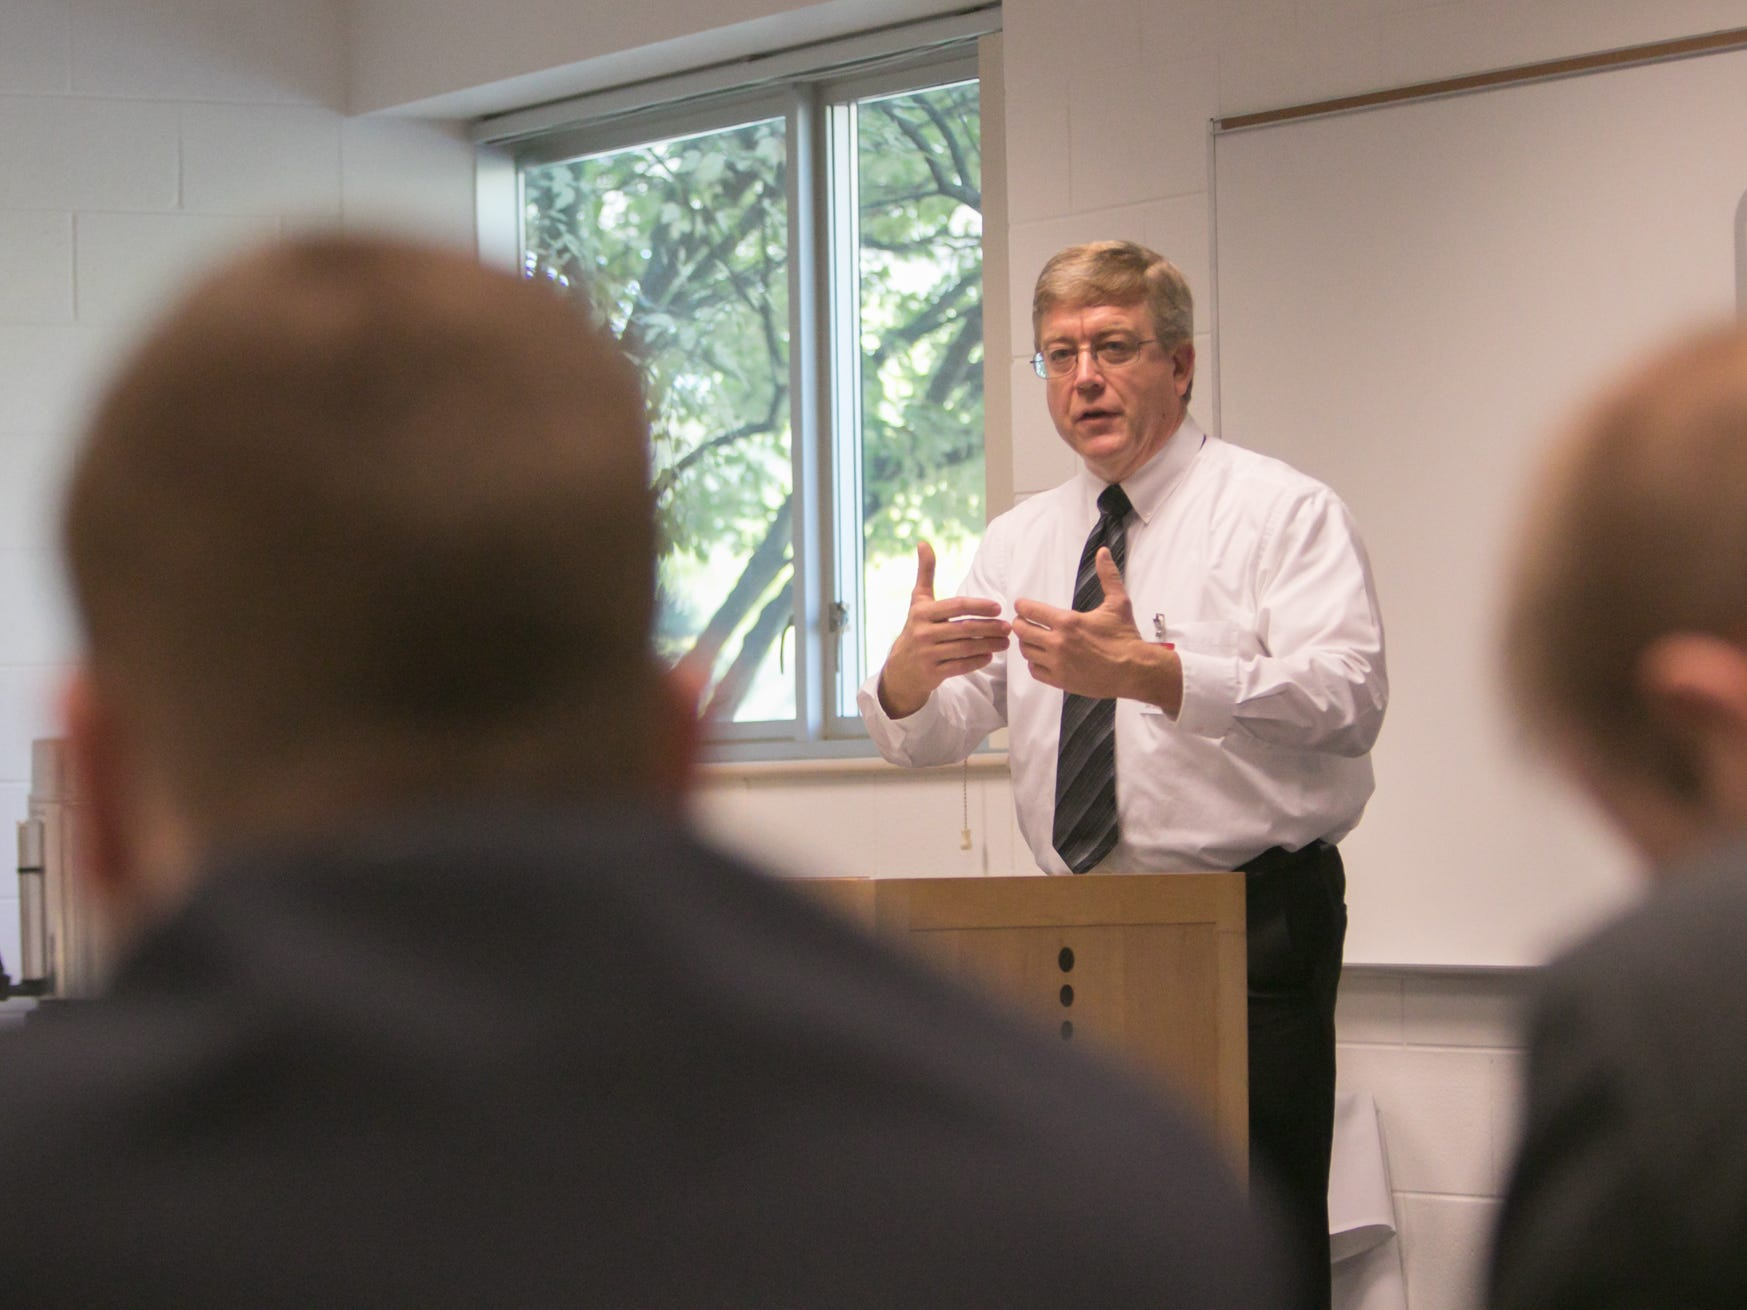 Jim Darga, director of Pinckney Cyber Training Institute, talks about the program to IBM executives touring the facility Tuesday, Oct. 9, 2018.